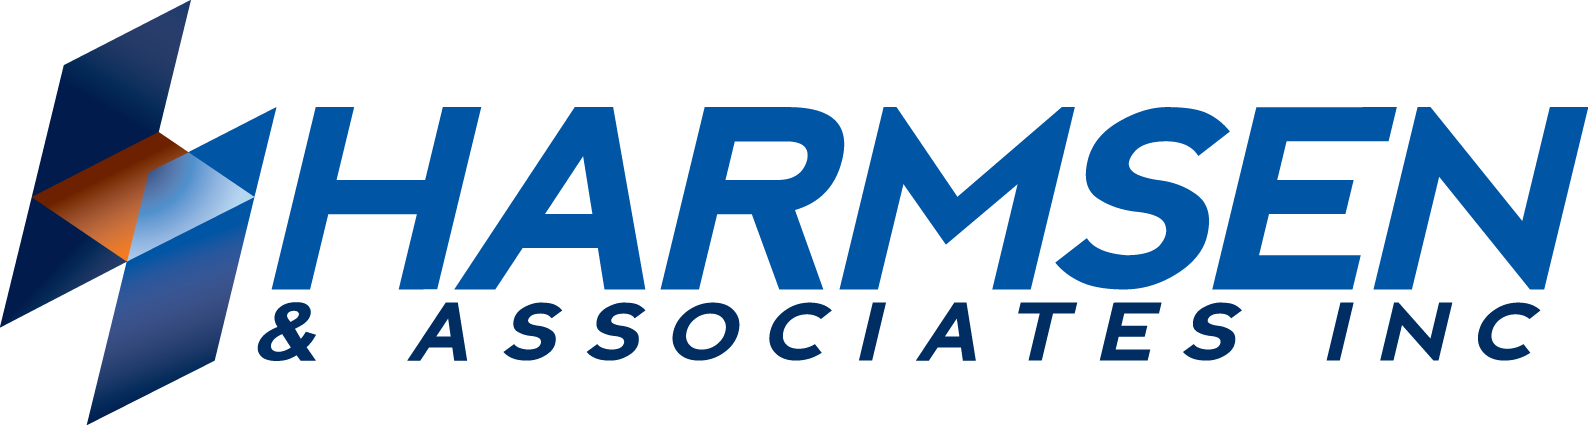 HARMSEN logo   FULL COLOR